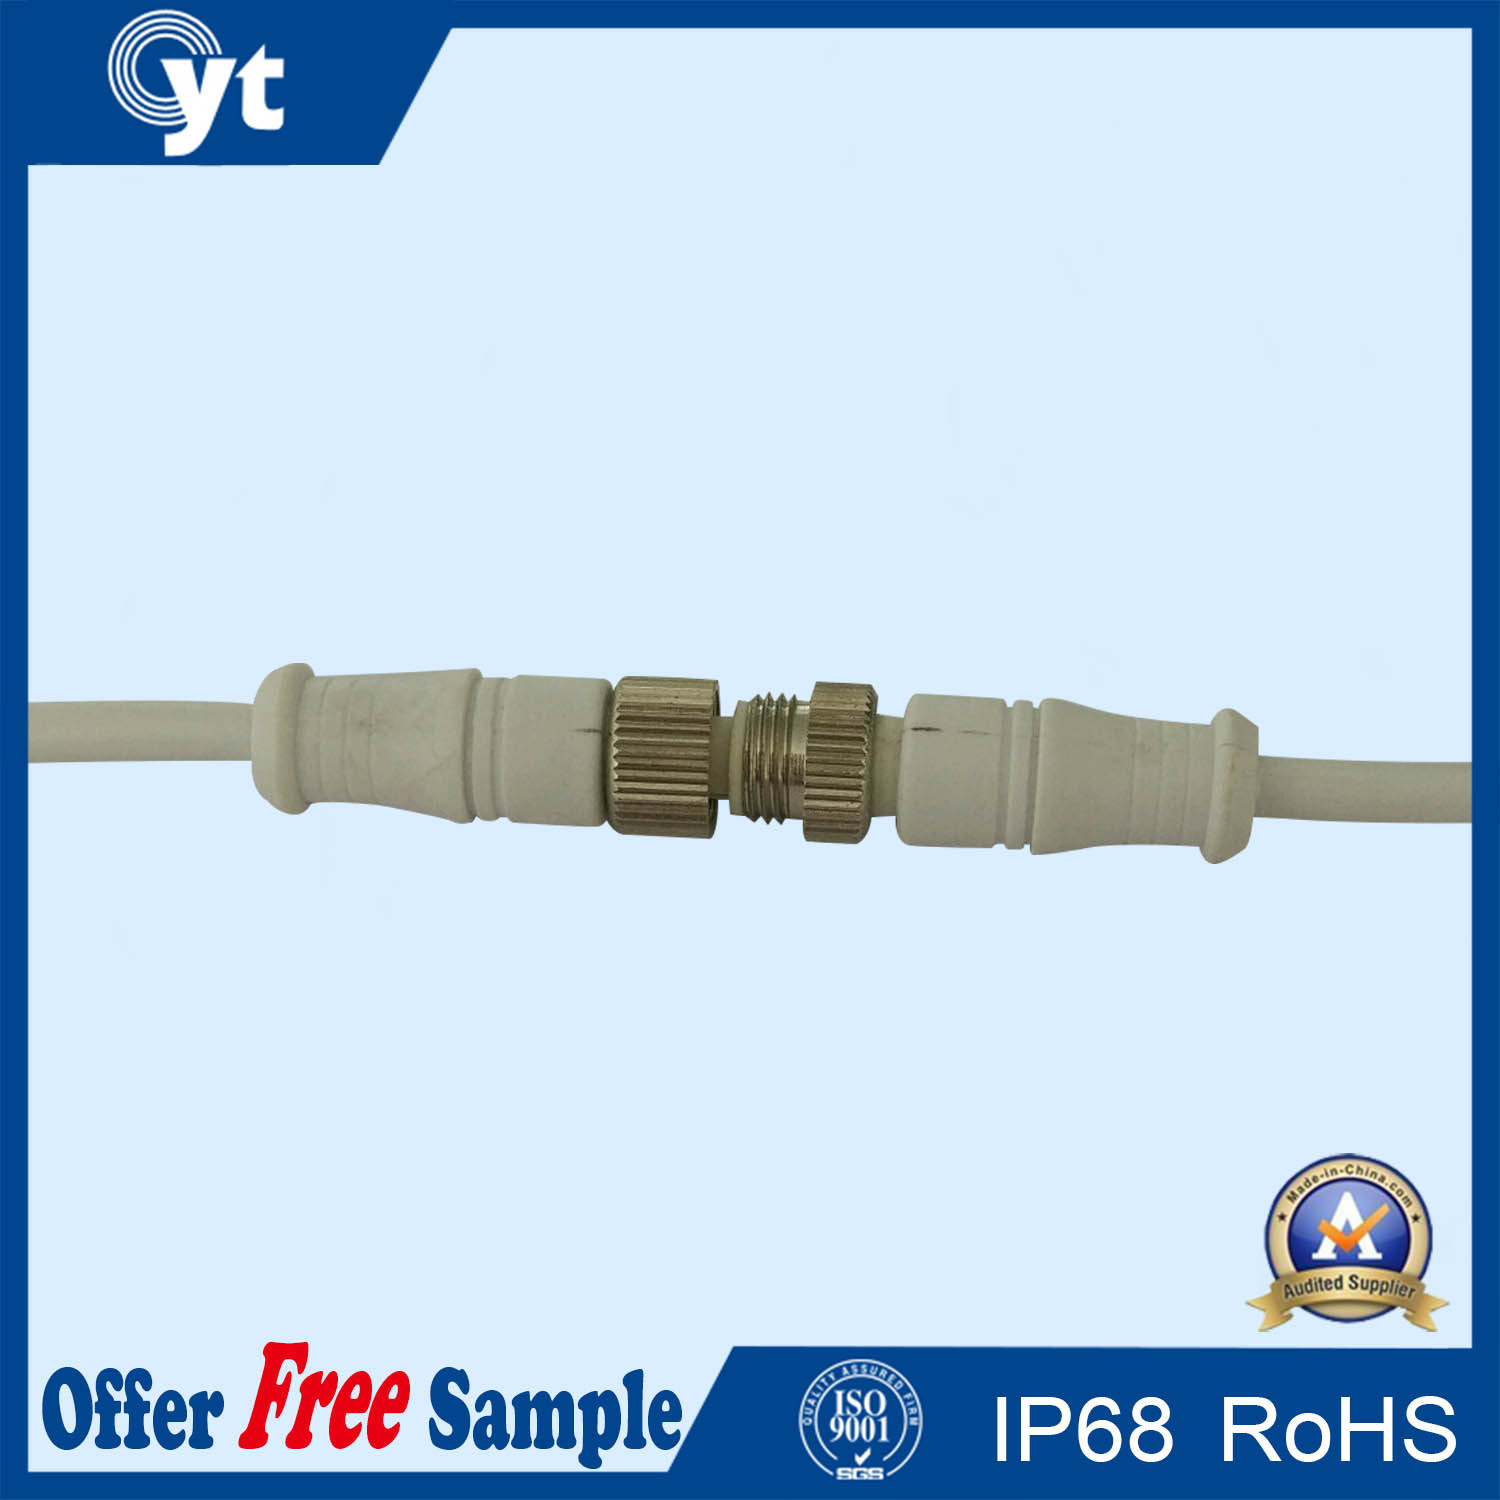 M11 Series Plastic Male to Female Electrical Waterproof Connector